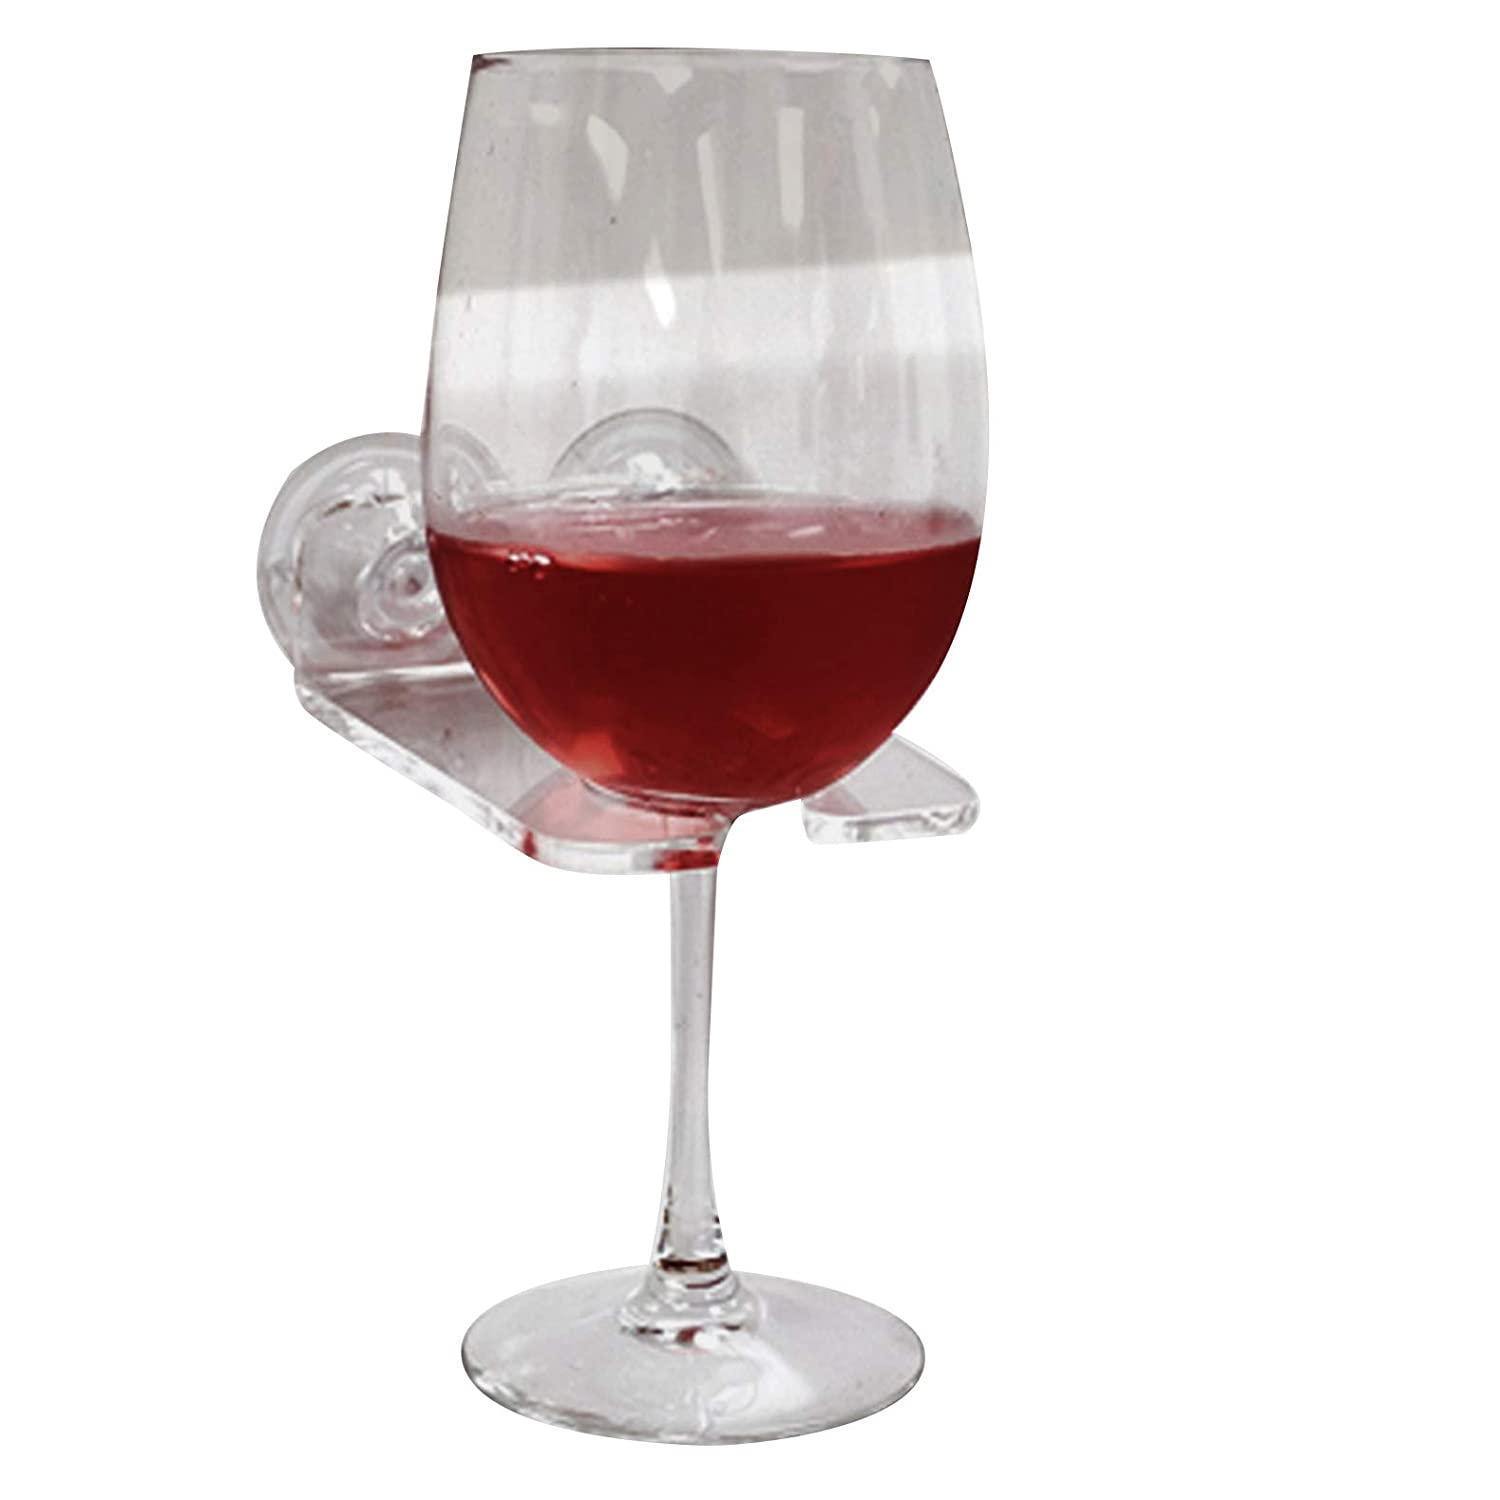 House Ur Home Bathtub Wine Glass Cupholder. Caddy Shower & Relax Bath with Powerful Strong Suction Cups,(1),Clear Acrylic (1)